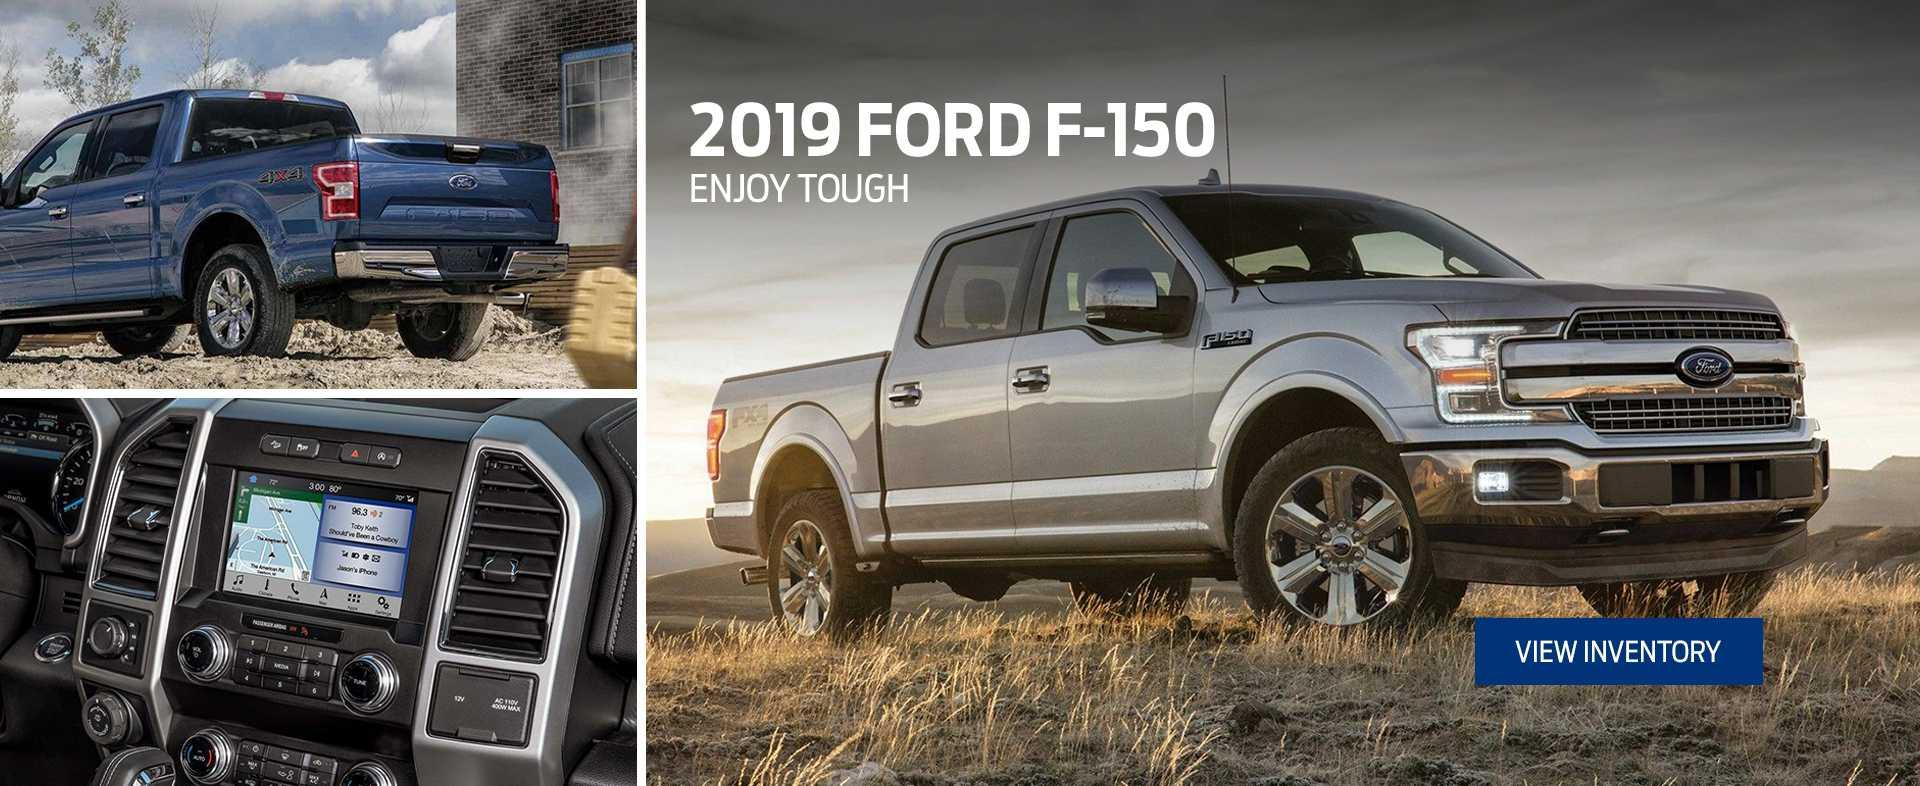 Ford Home 2019 F-150 image